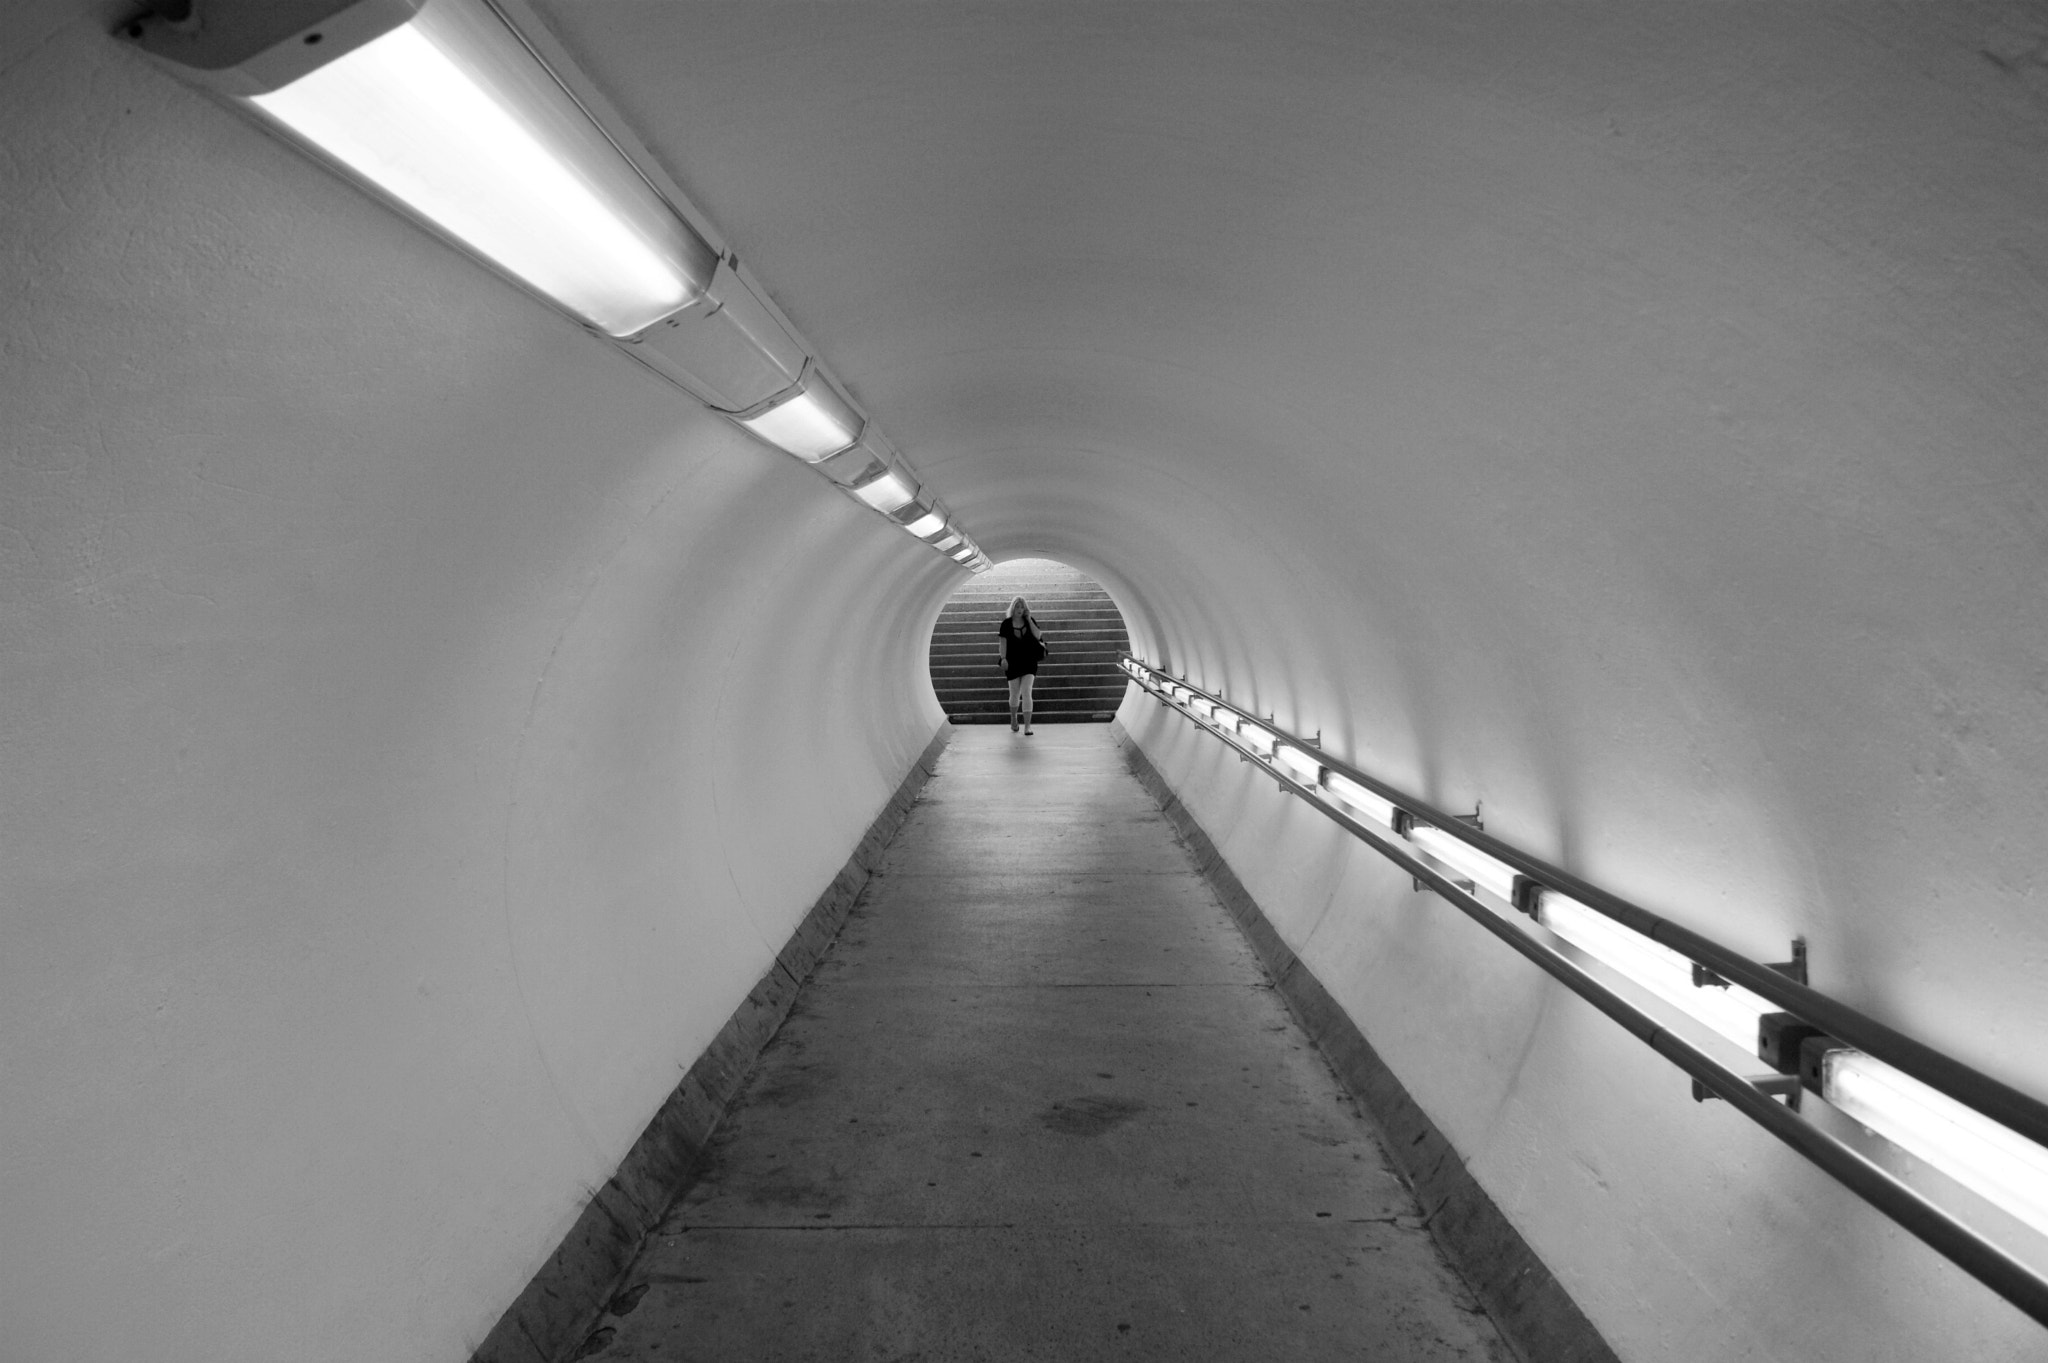 Photograph Tunnelview by Geert-Jan Kettelarij on 500px